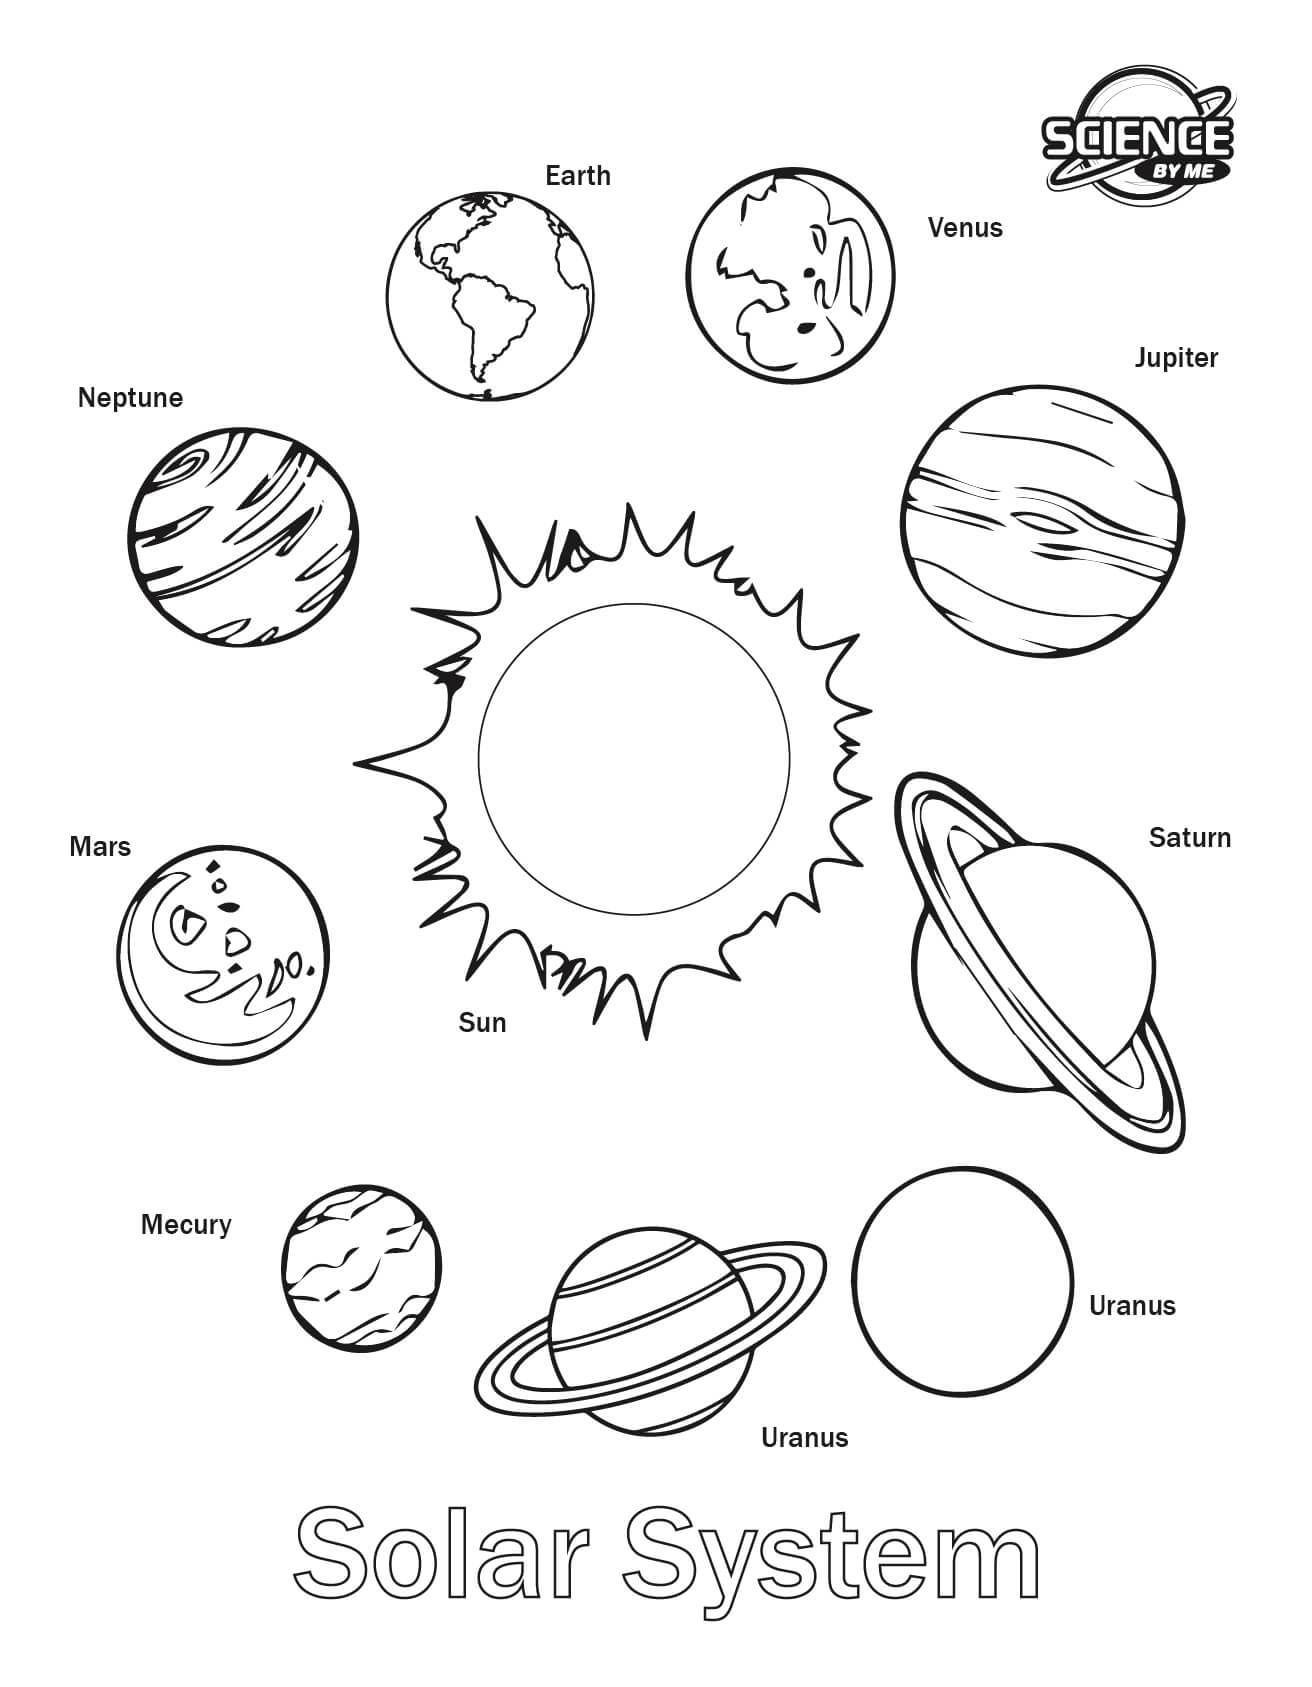 Solar System Coloring Pages Printable Archives For Solar System Coloring Pages